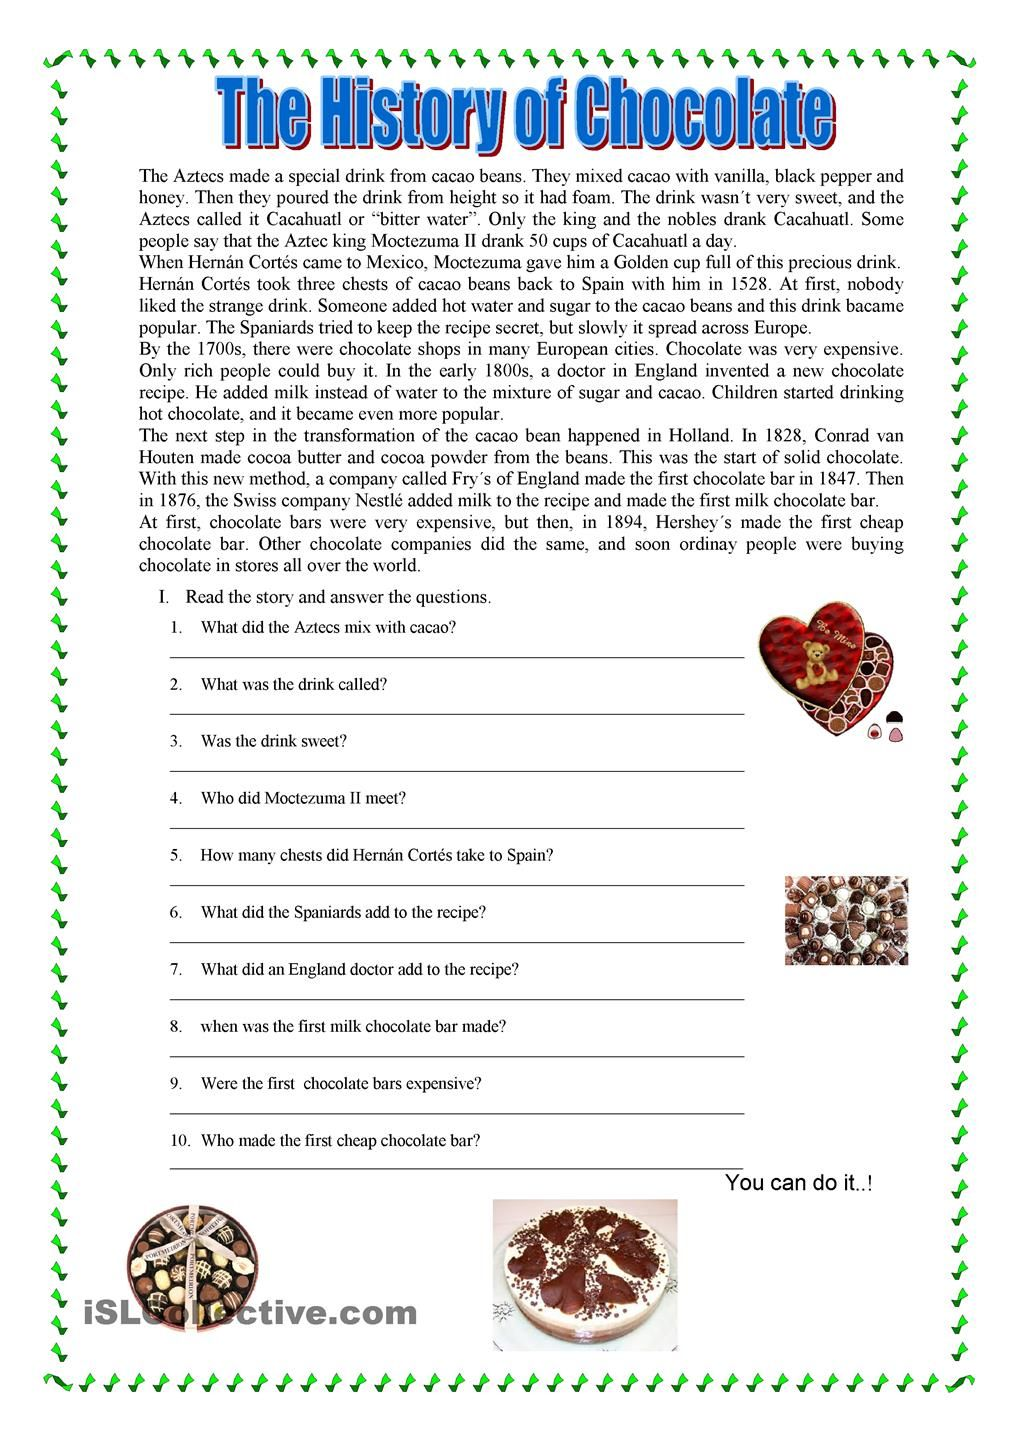 Esl worksheets for reading comprehension